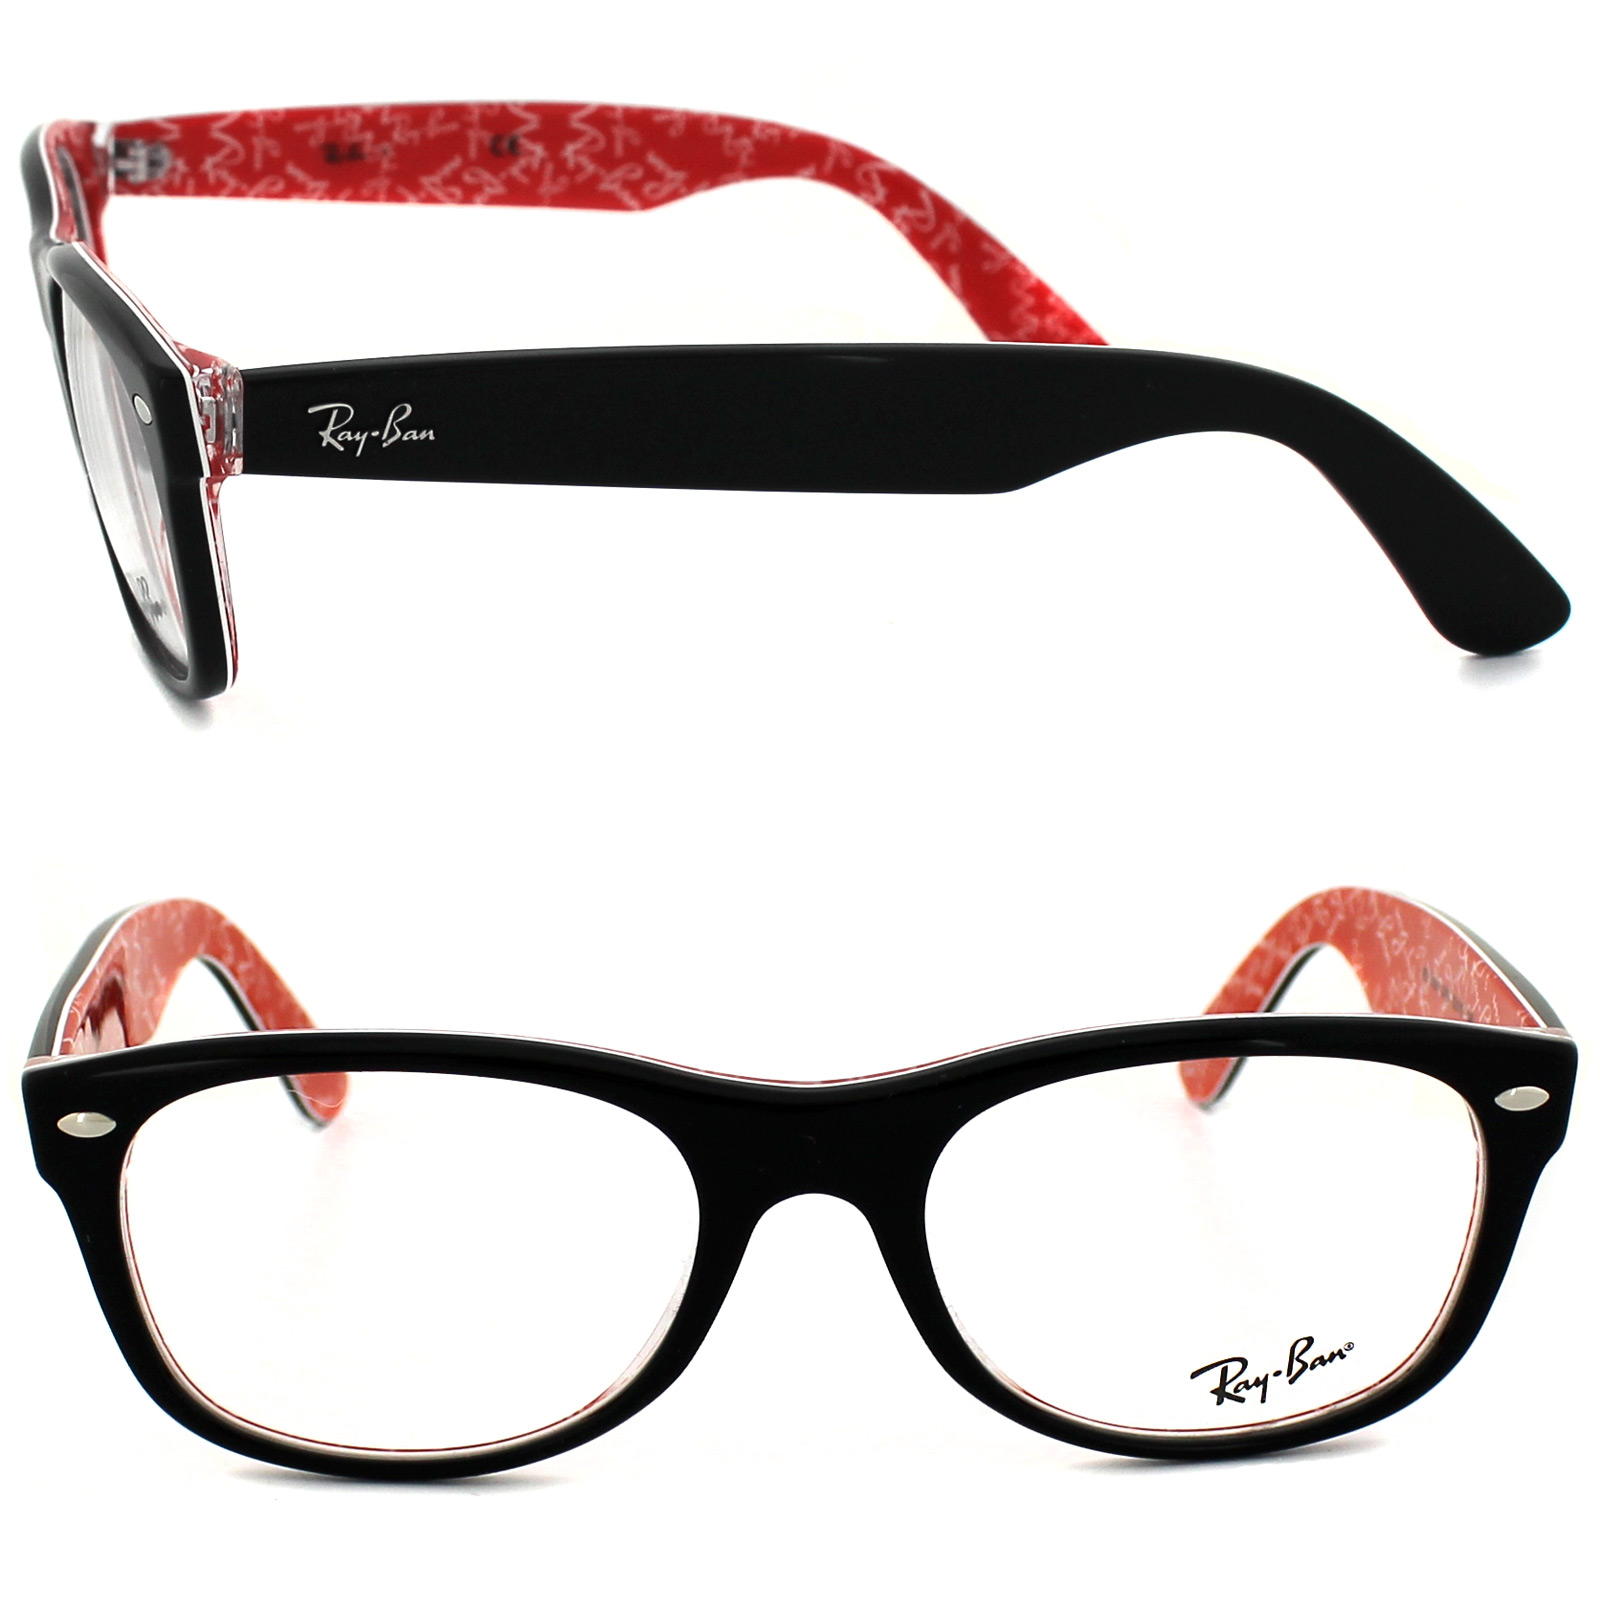 Ray-Ban Glasses Frames 5184 2479 Top Black On Texture Red ...